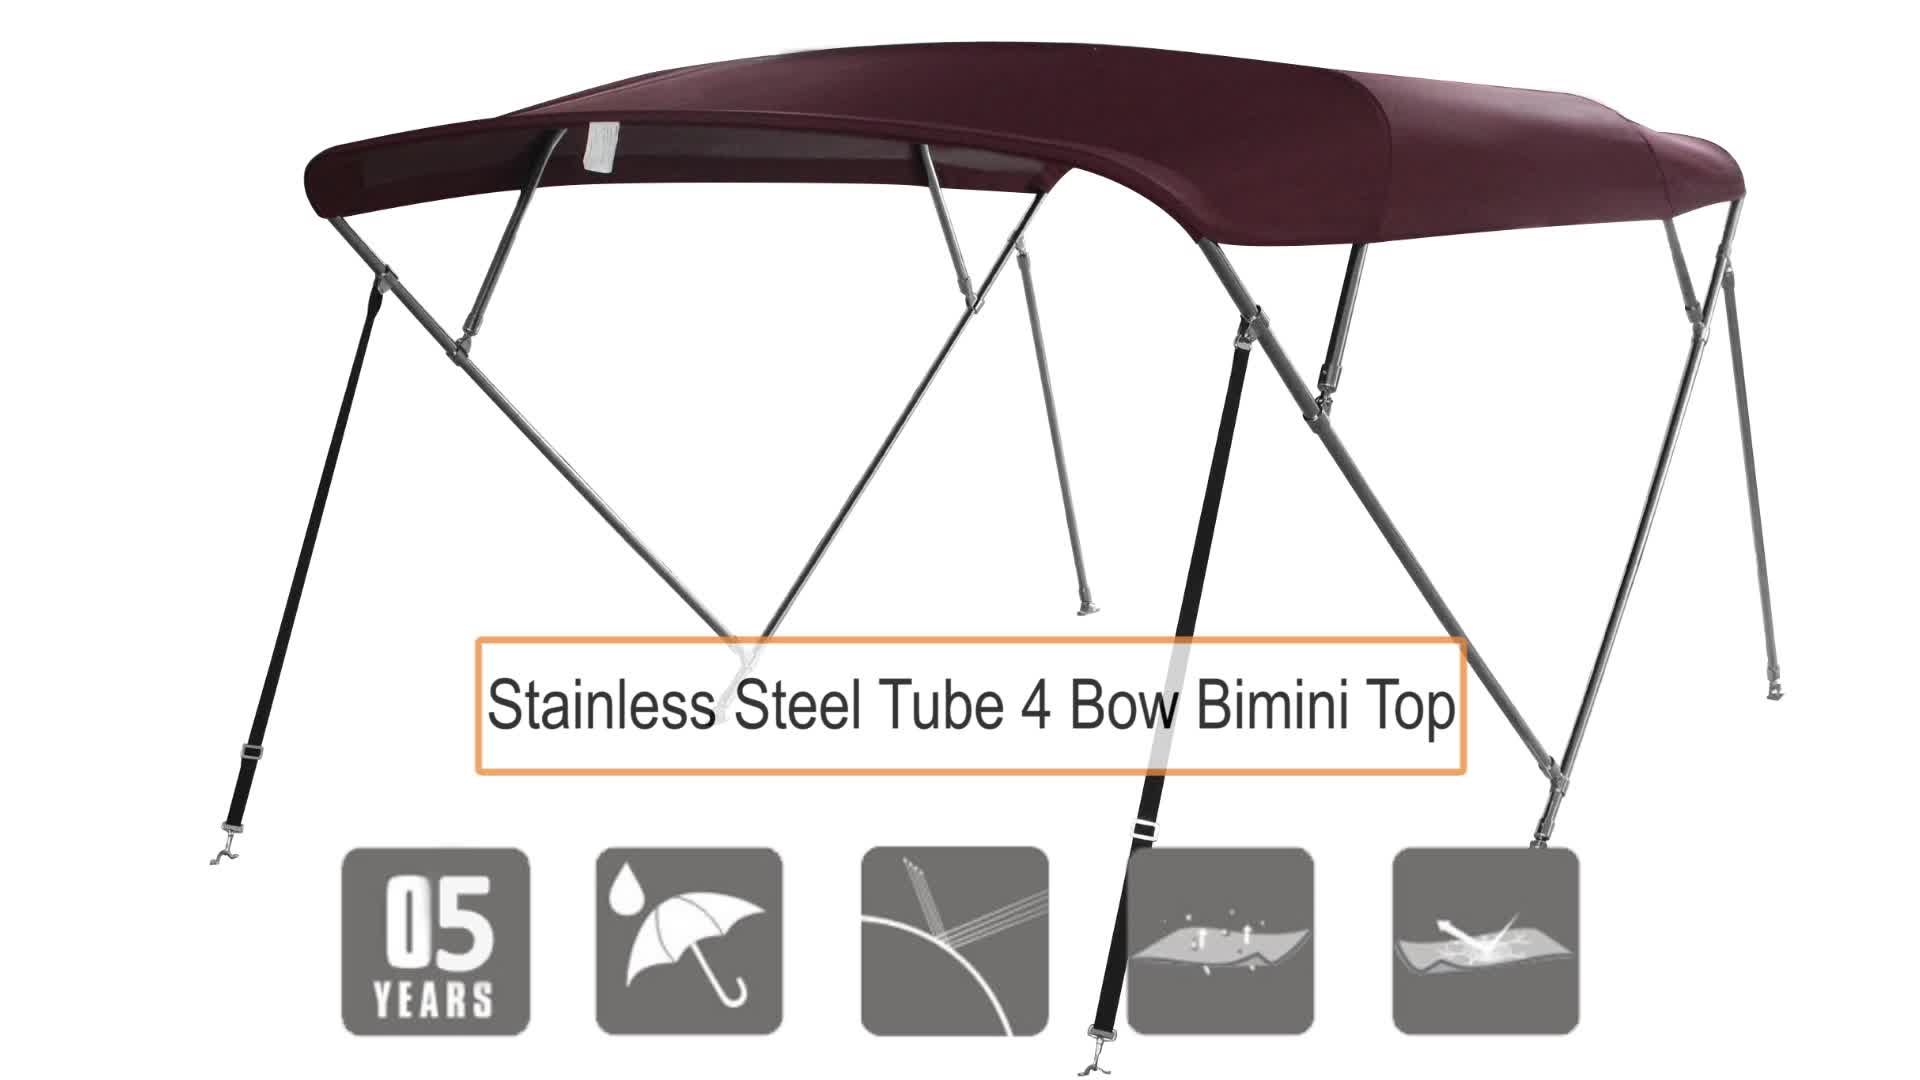 5 years color warranty 600D solution dyed 3 bow stainless steel Bimini Top Sun Canopy Cover